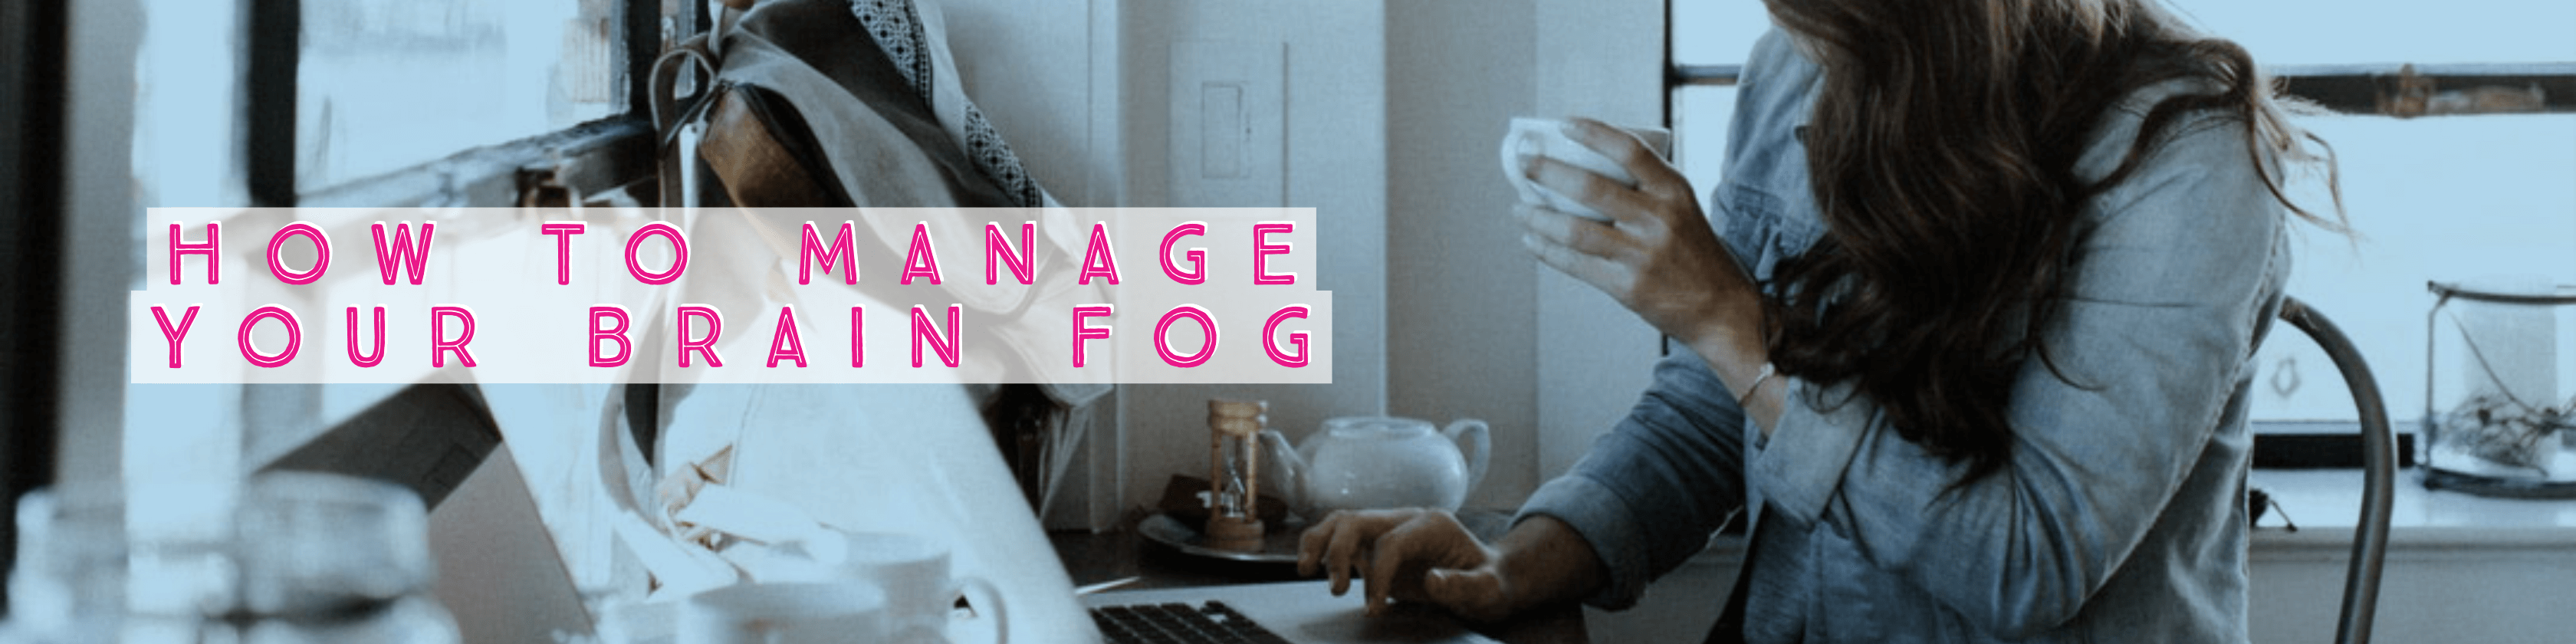 How to Manage Brain Fog